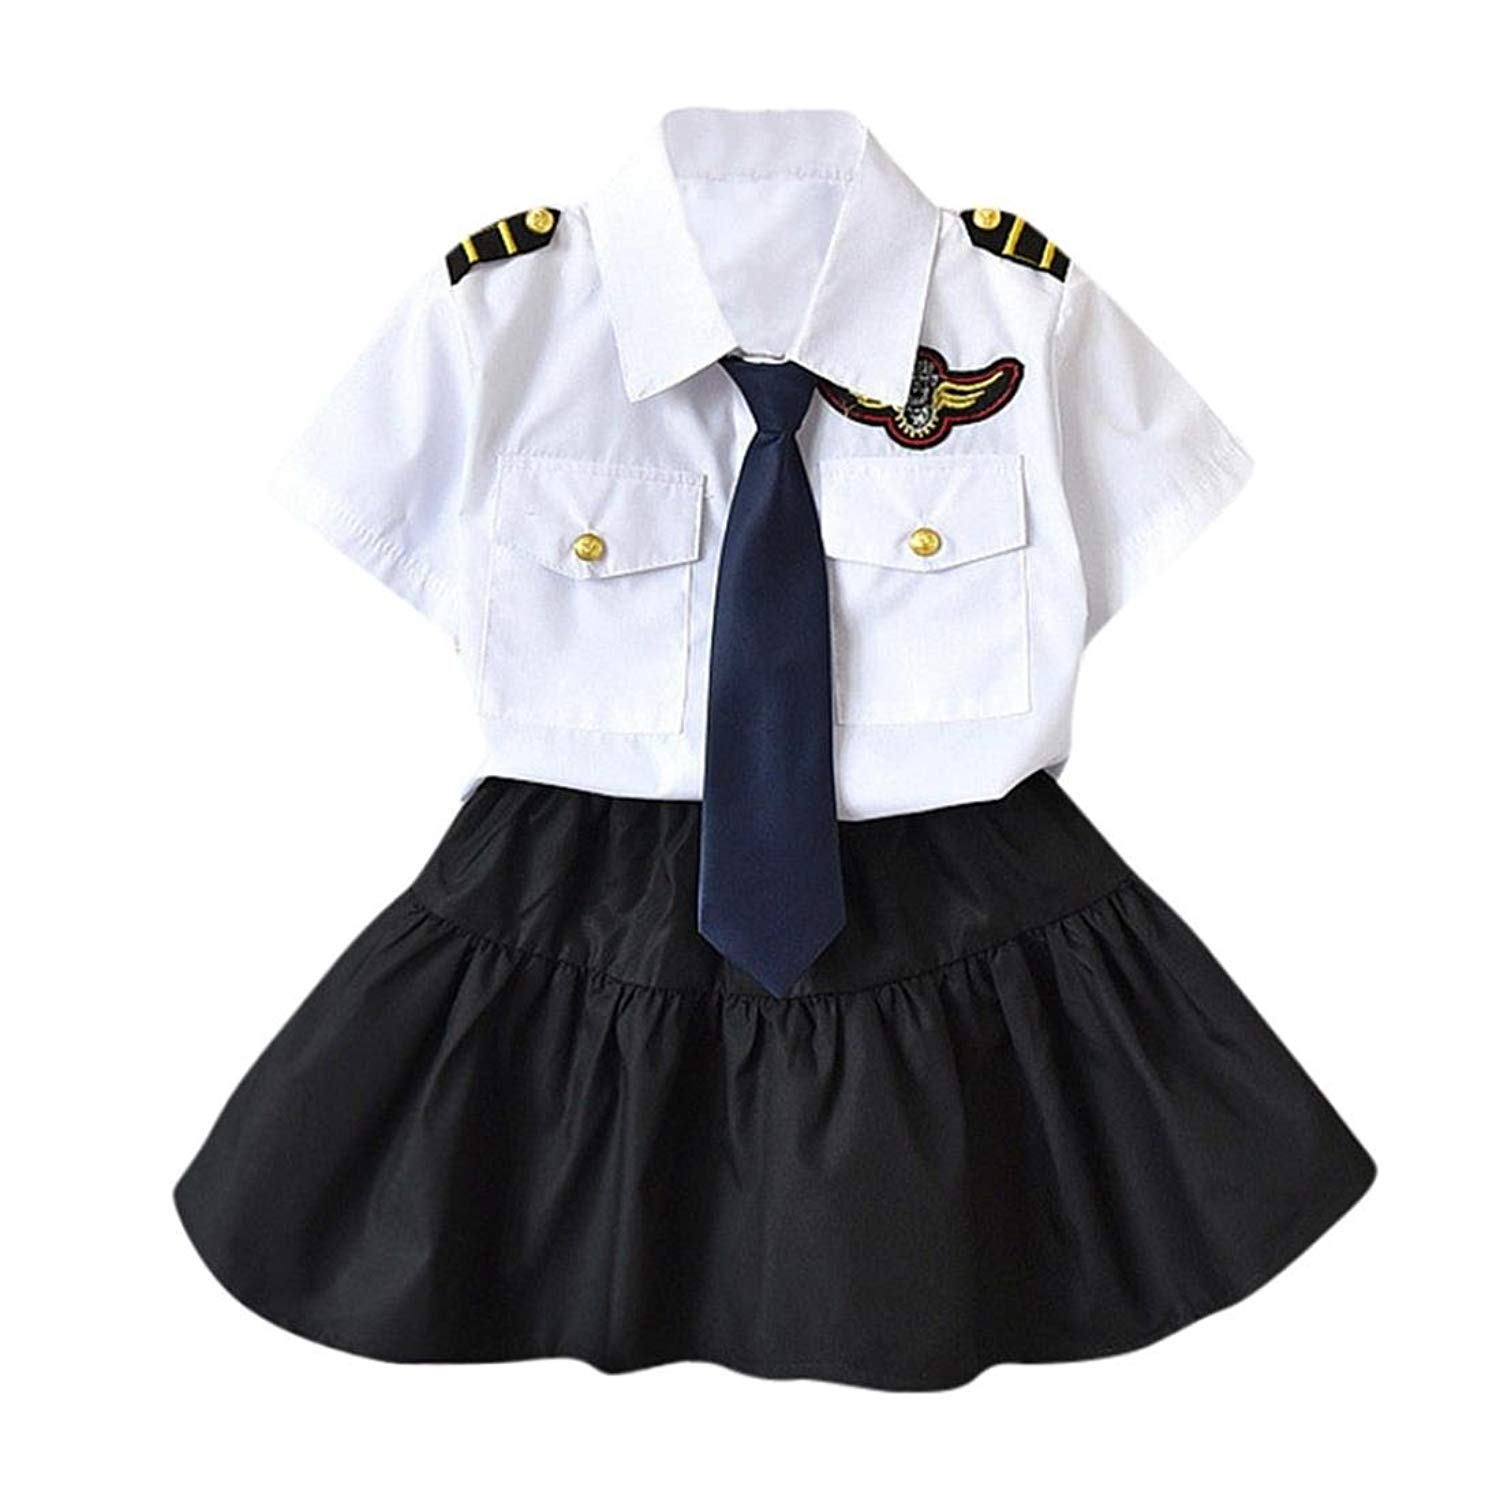 WARMSHOP Girls Boys Short Sleeve Navy Style 3 Piece Playwear Set Tops T-Shirt with Necktie+Pants&Skirt Formal Clothes Set